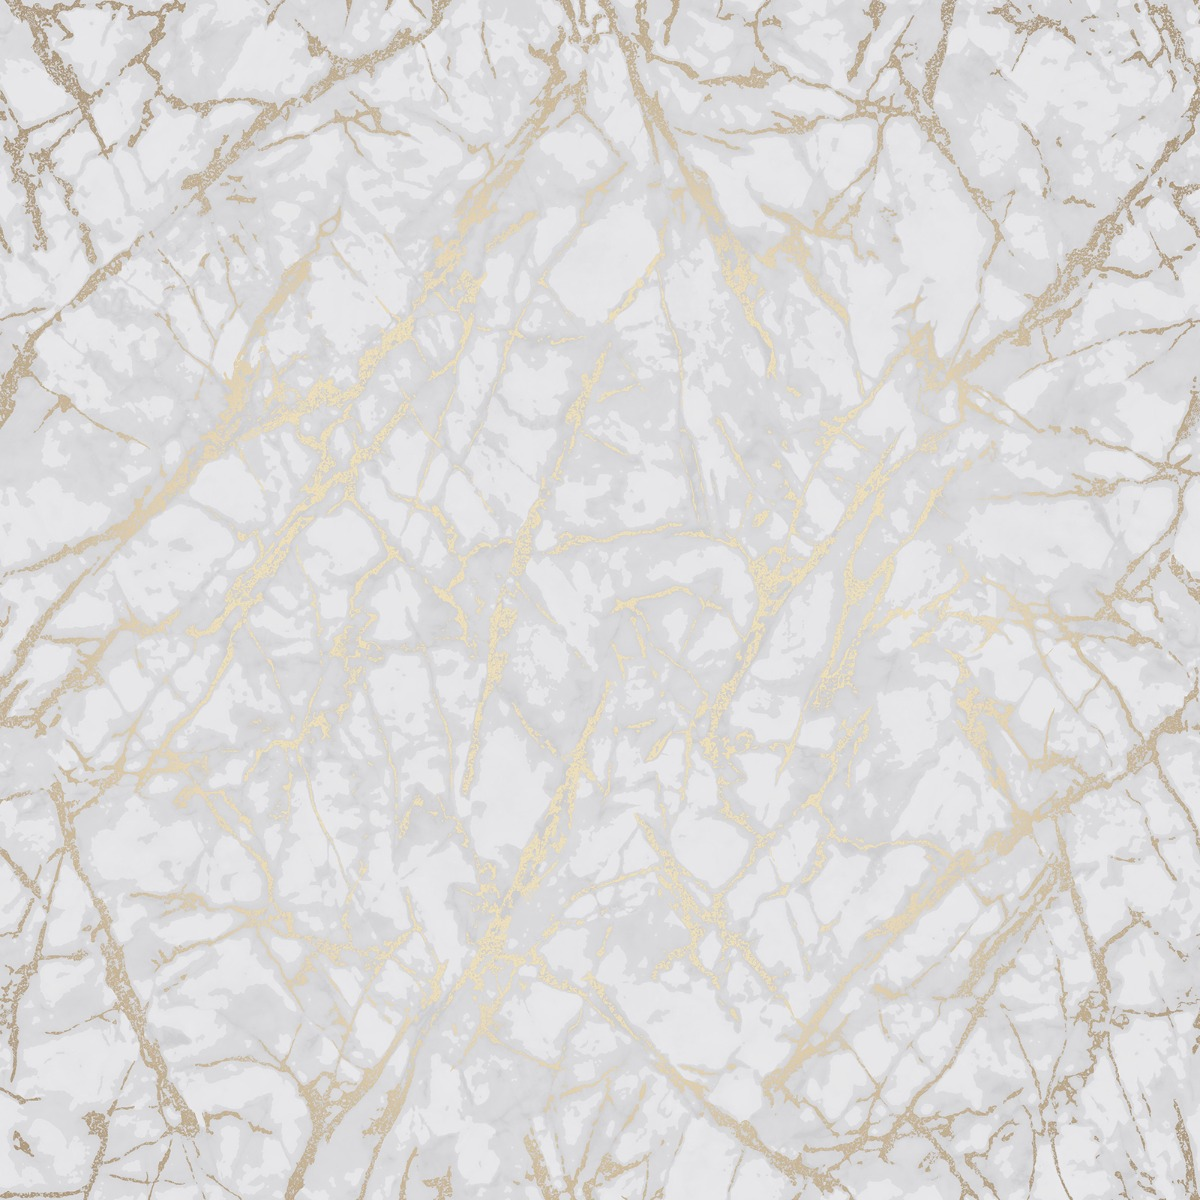 The Latest Wallpaper Trend Is Marble Effect Wallpaper Including